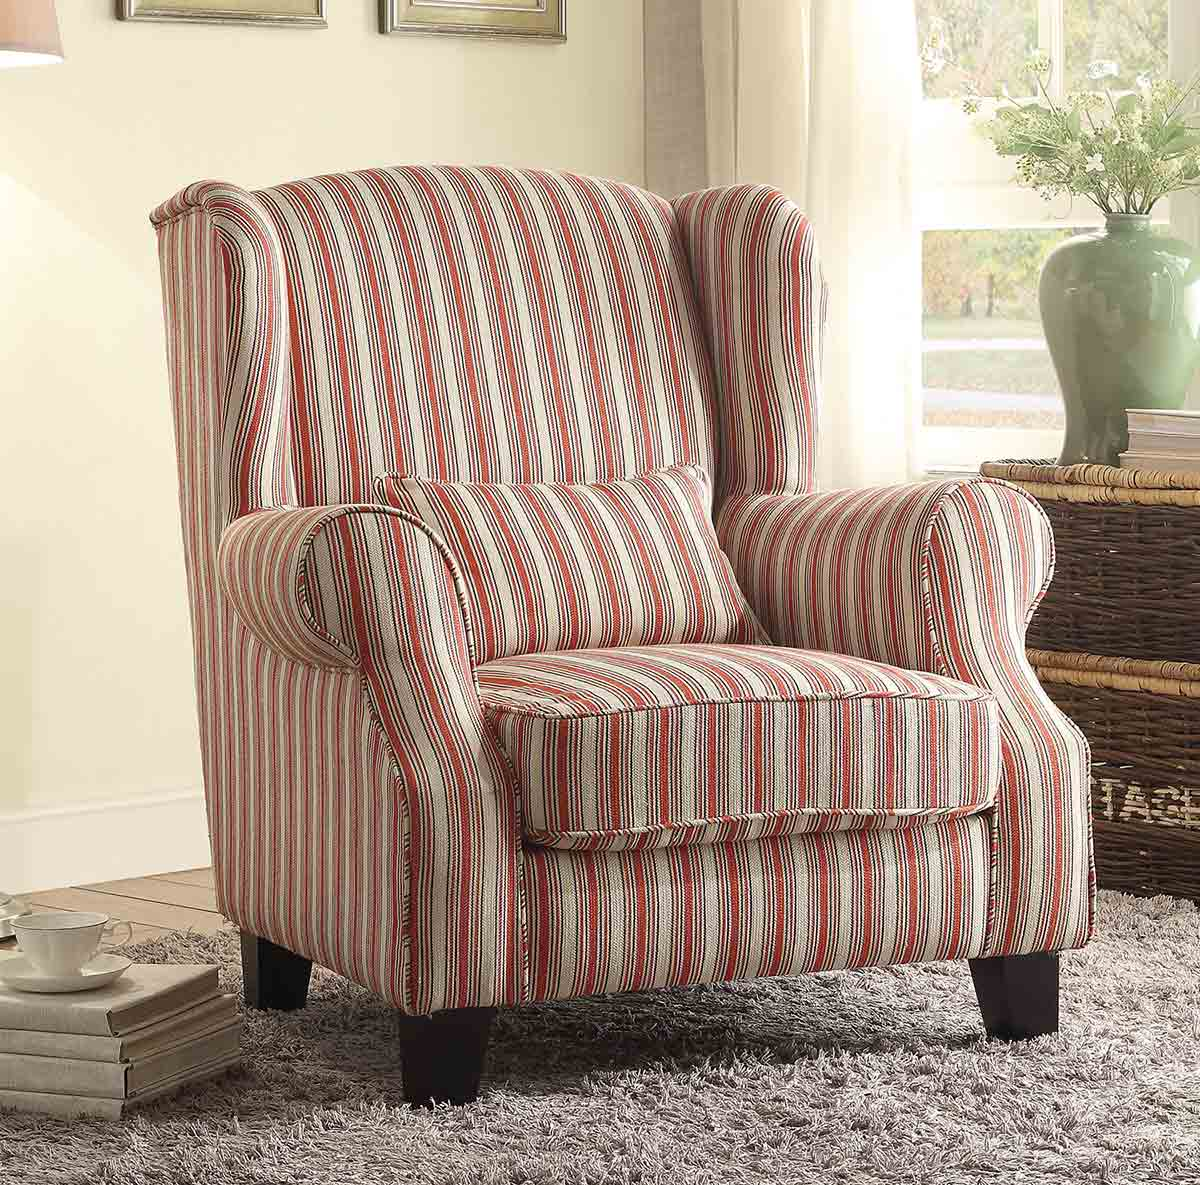 Homelegance La Verne Accent Chair with 1 Kidney Pillow - Red/Cream